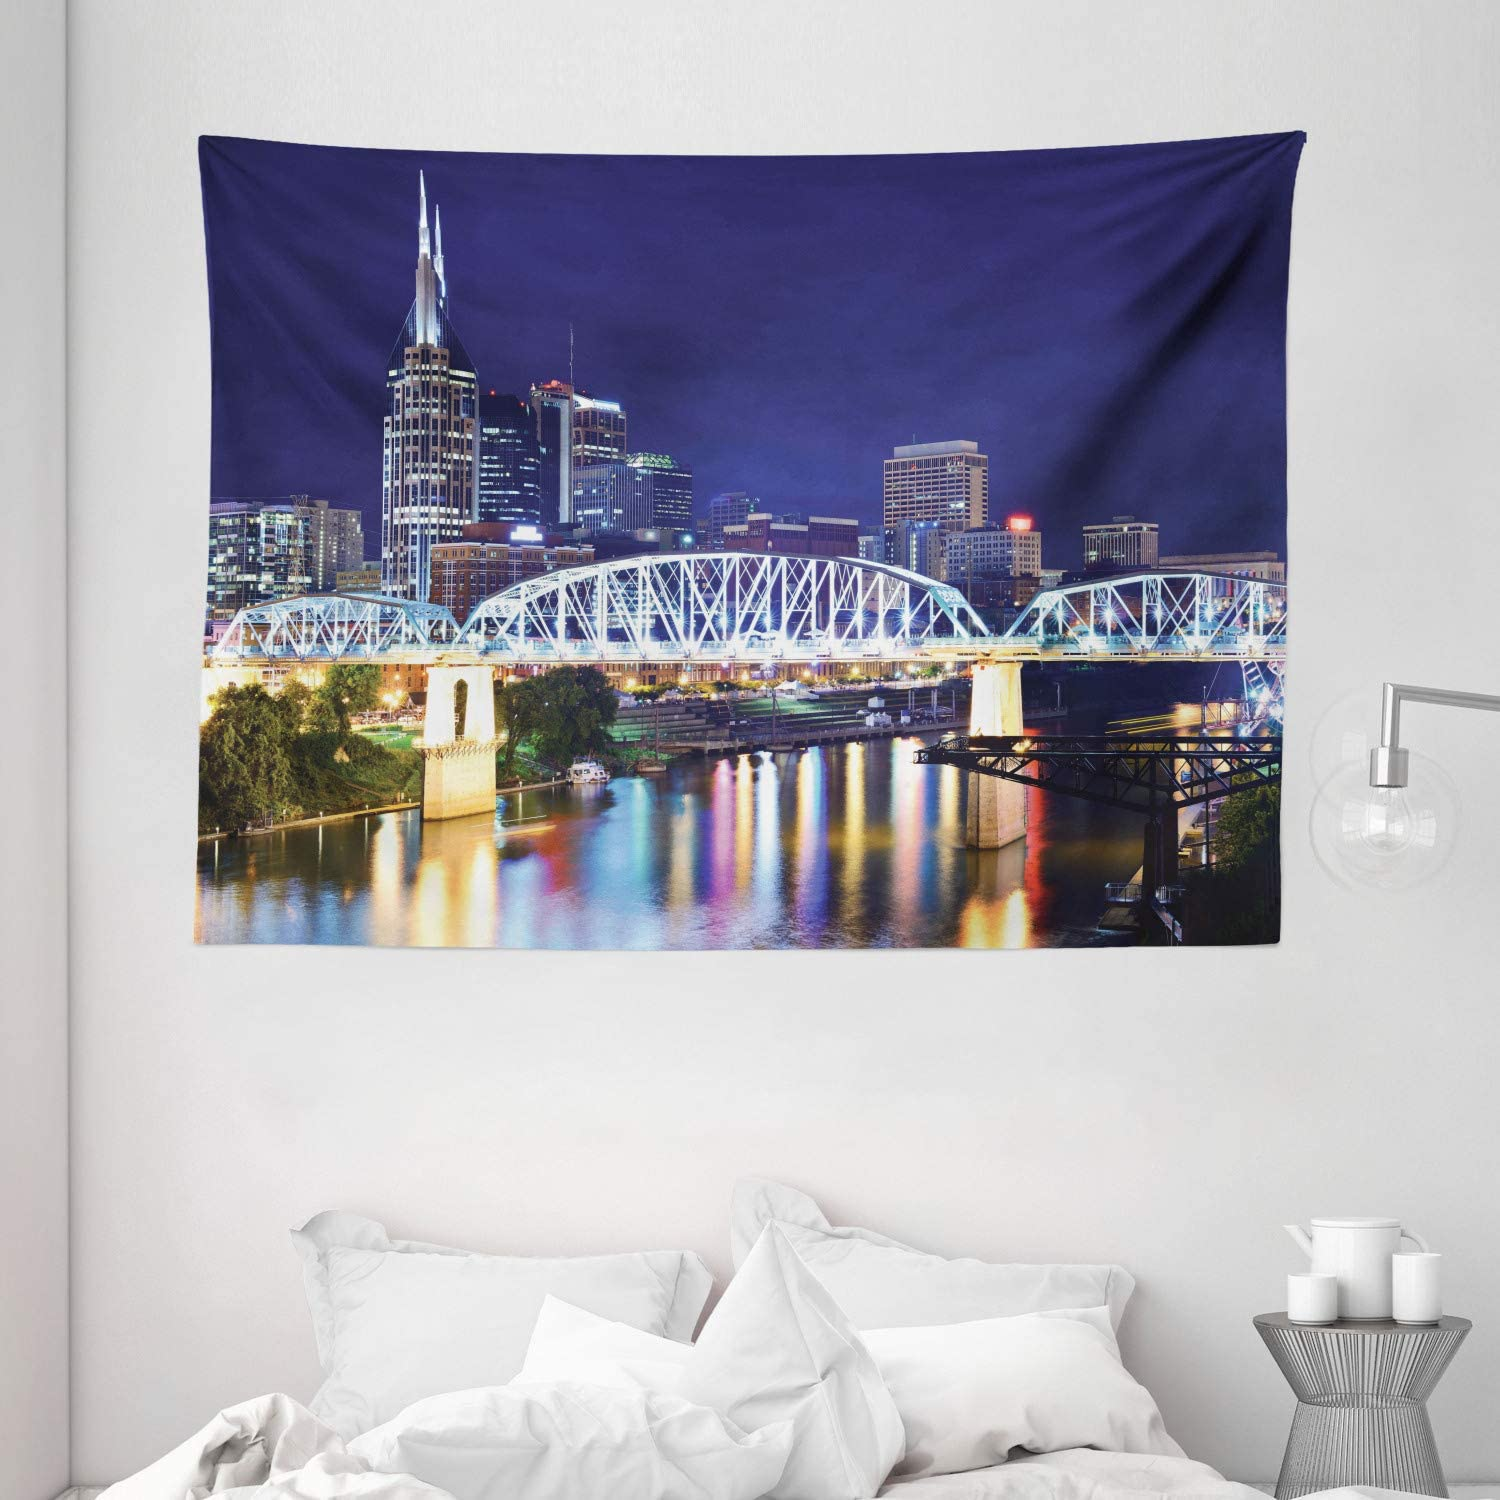 Apartment Decor Tapestry by Ambesonne, Skyline Of Downtown Nashville, Tennessee, Usa. Reflection Travel Destinations, Wall Hanging for Bedroom Living Room Dorm, 80 X 60 Inch, Purple Green